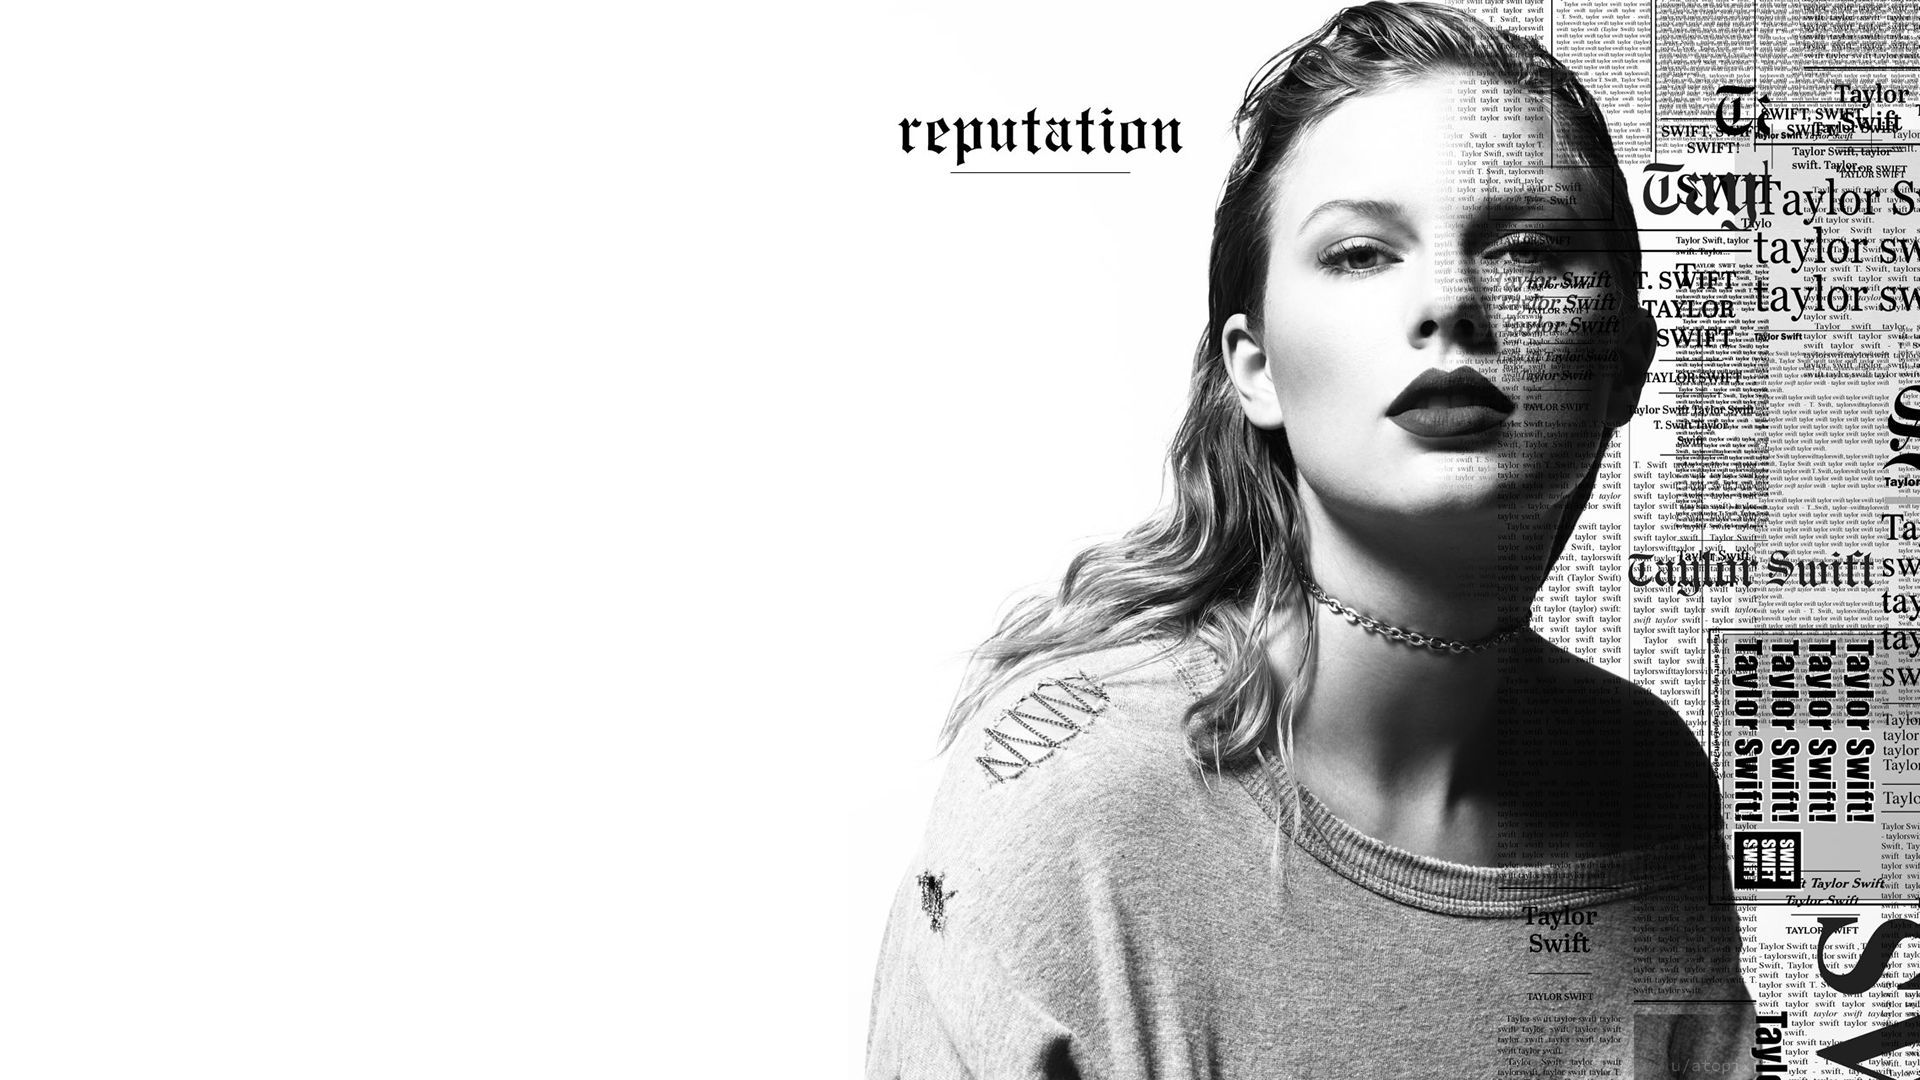 Taylor Swift Reputation Wallpapers Top Free Taylor Swift Reputation Backgrounds Wallpaperaccess